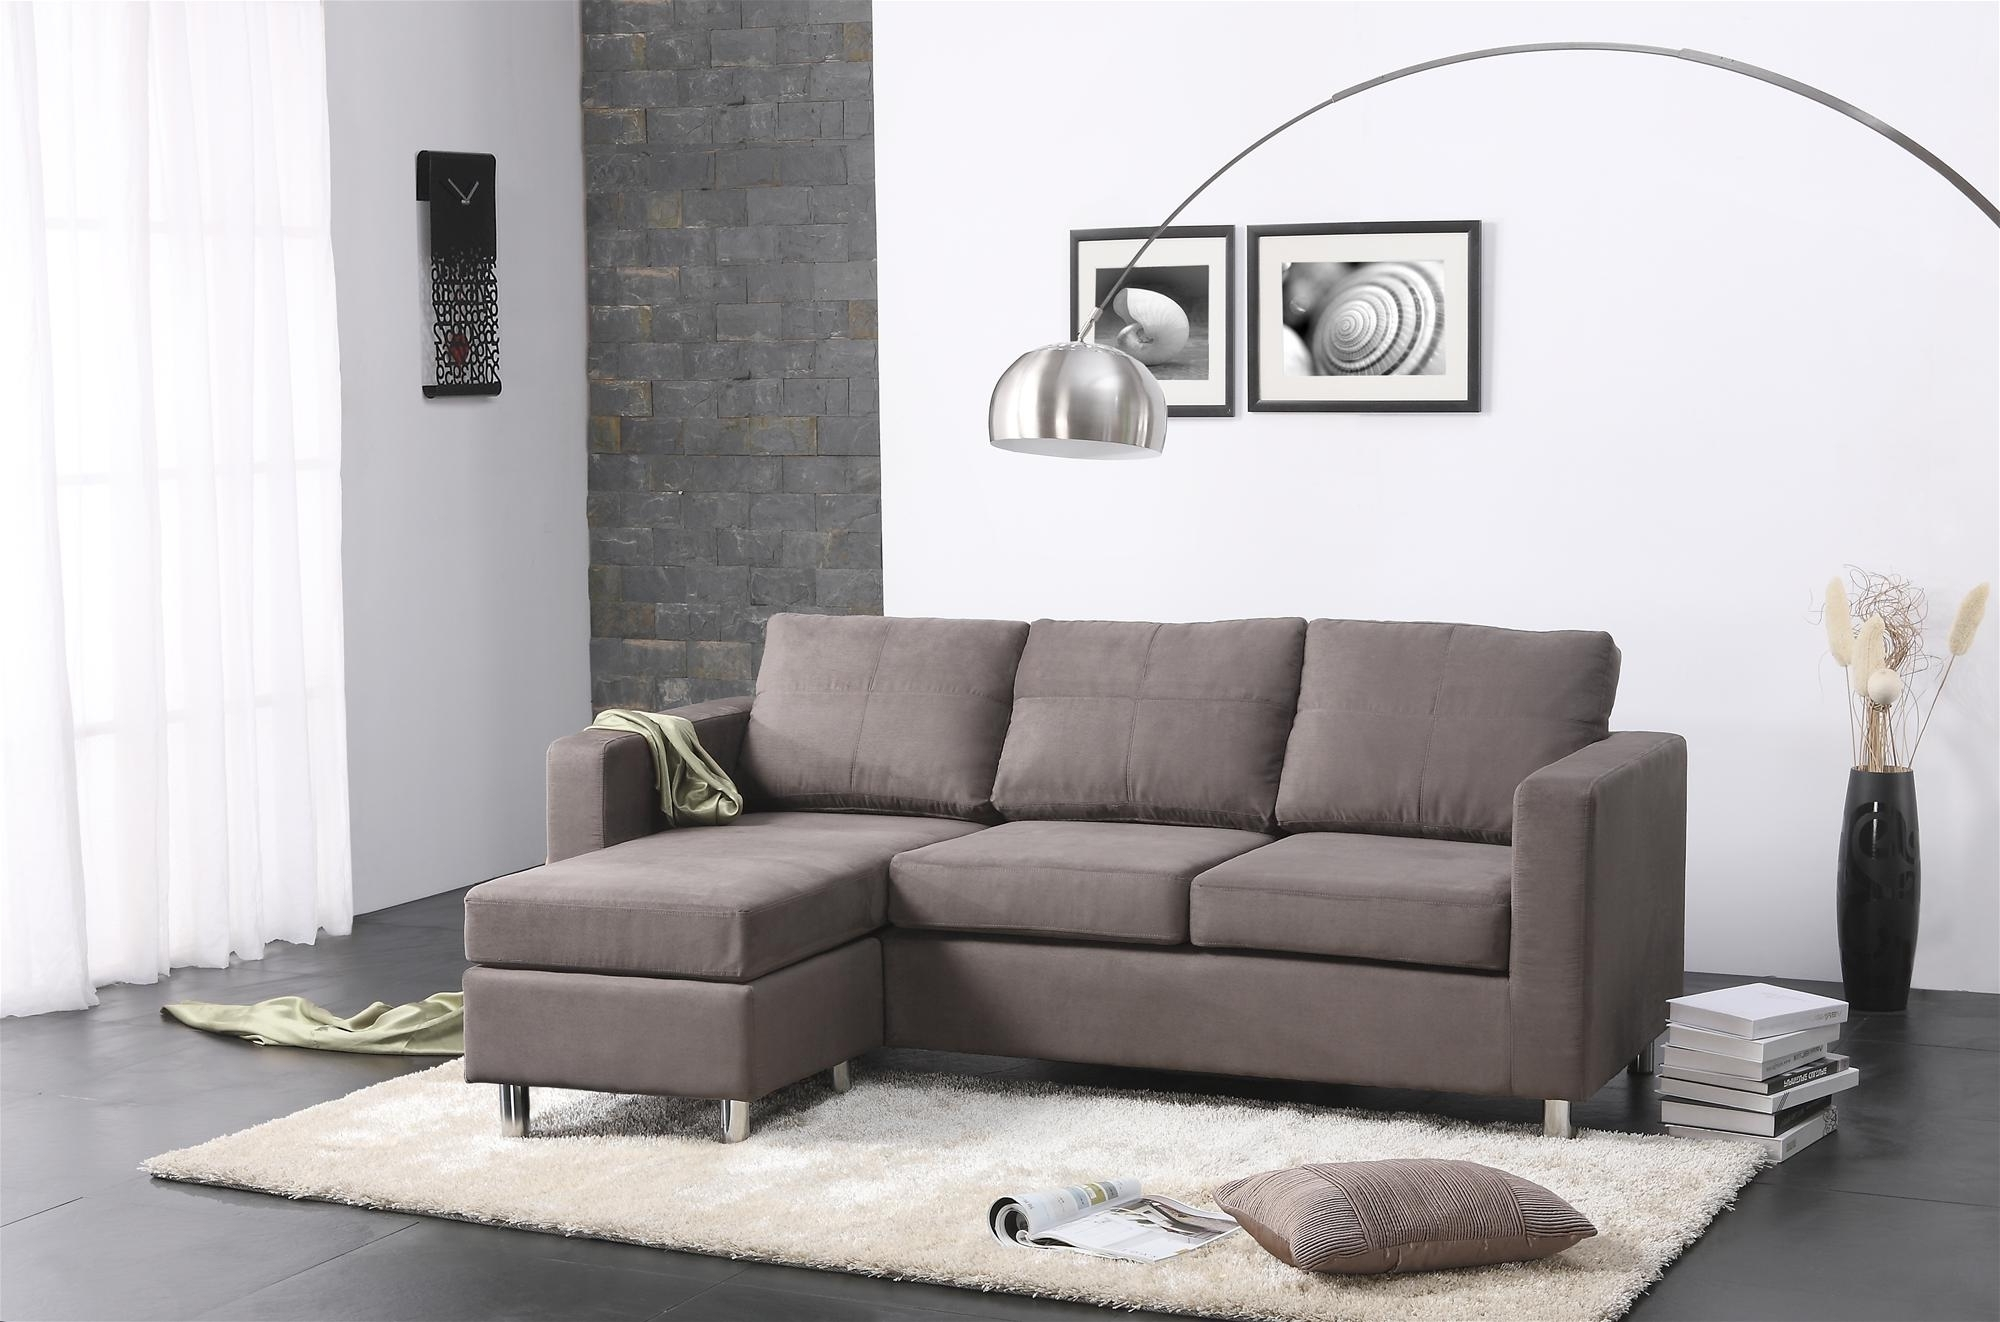 Sectional Sofas For Small Places For Favorite Sofa : Small Sofas For Small Spaces Tiny Sleeper Sofa Retro Sofa (View 14 of 20)